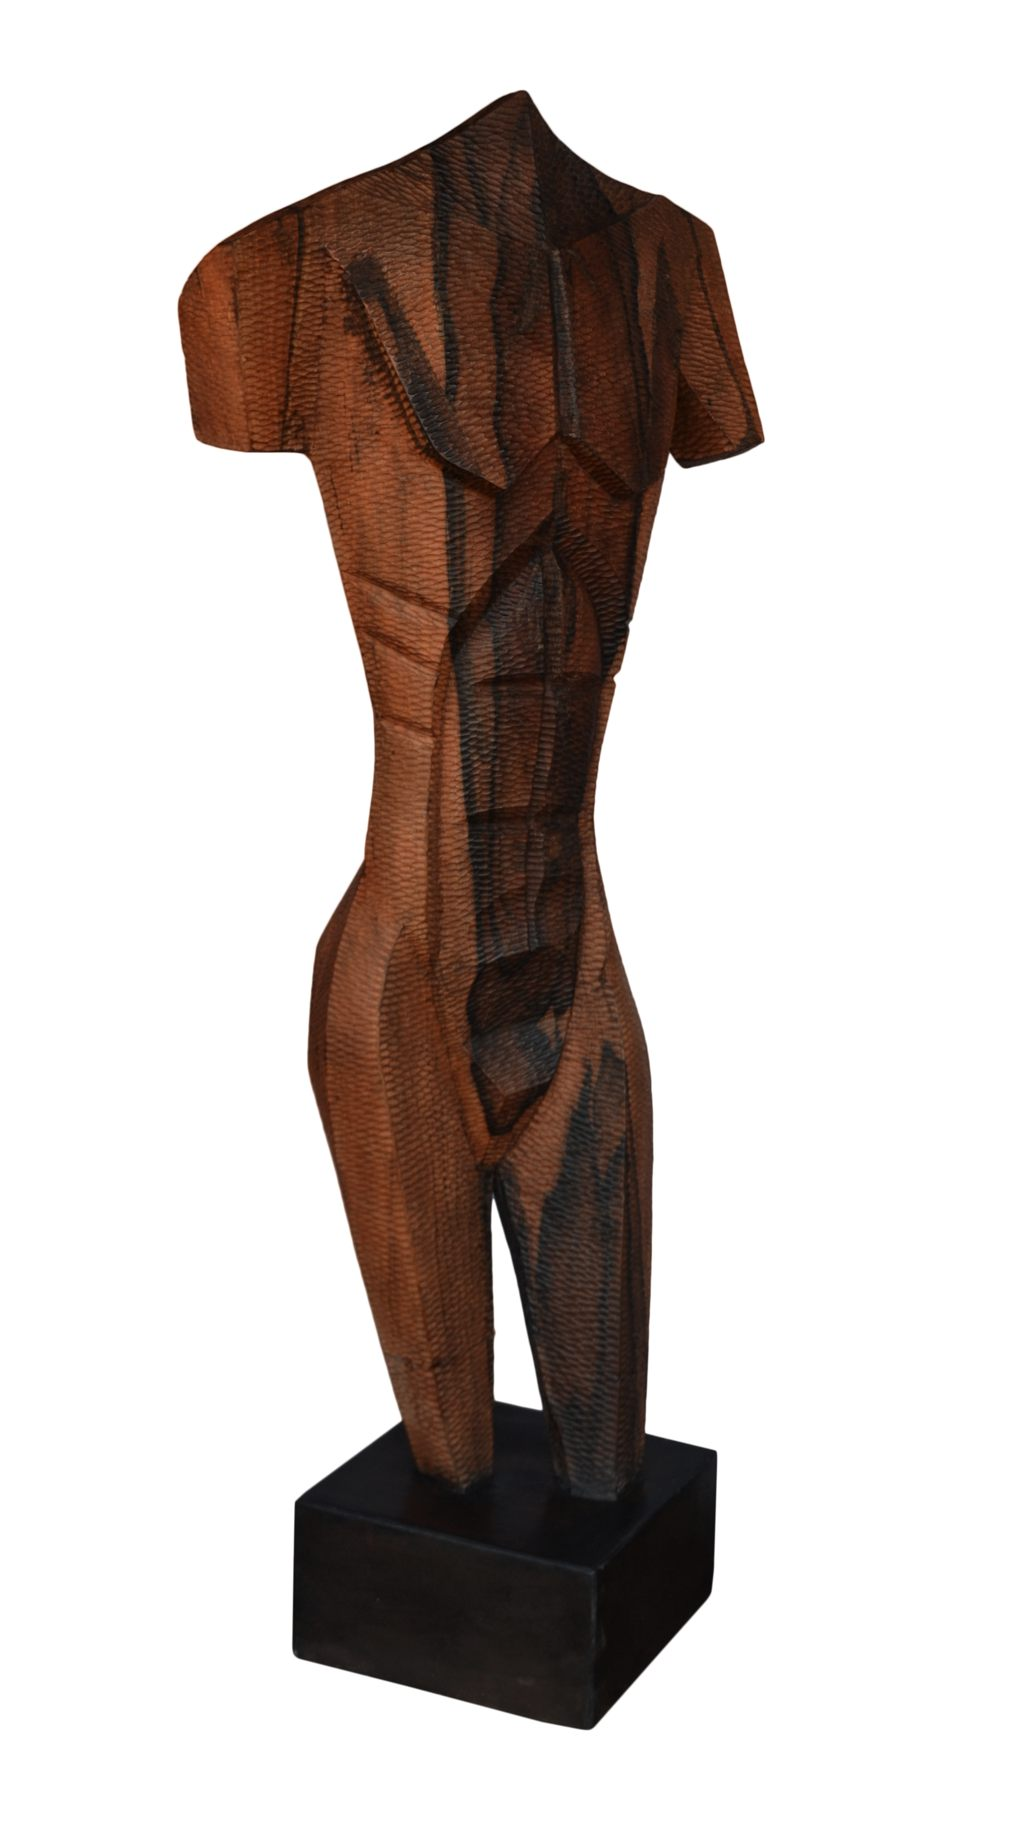 The Man, The Woman..., 54 Inches, Wood, 2015 (1)